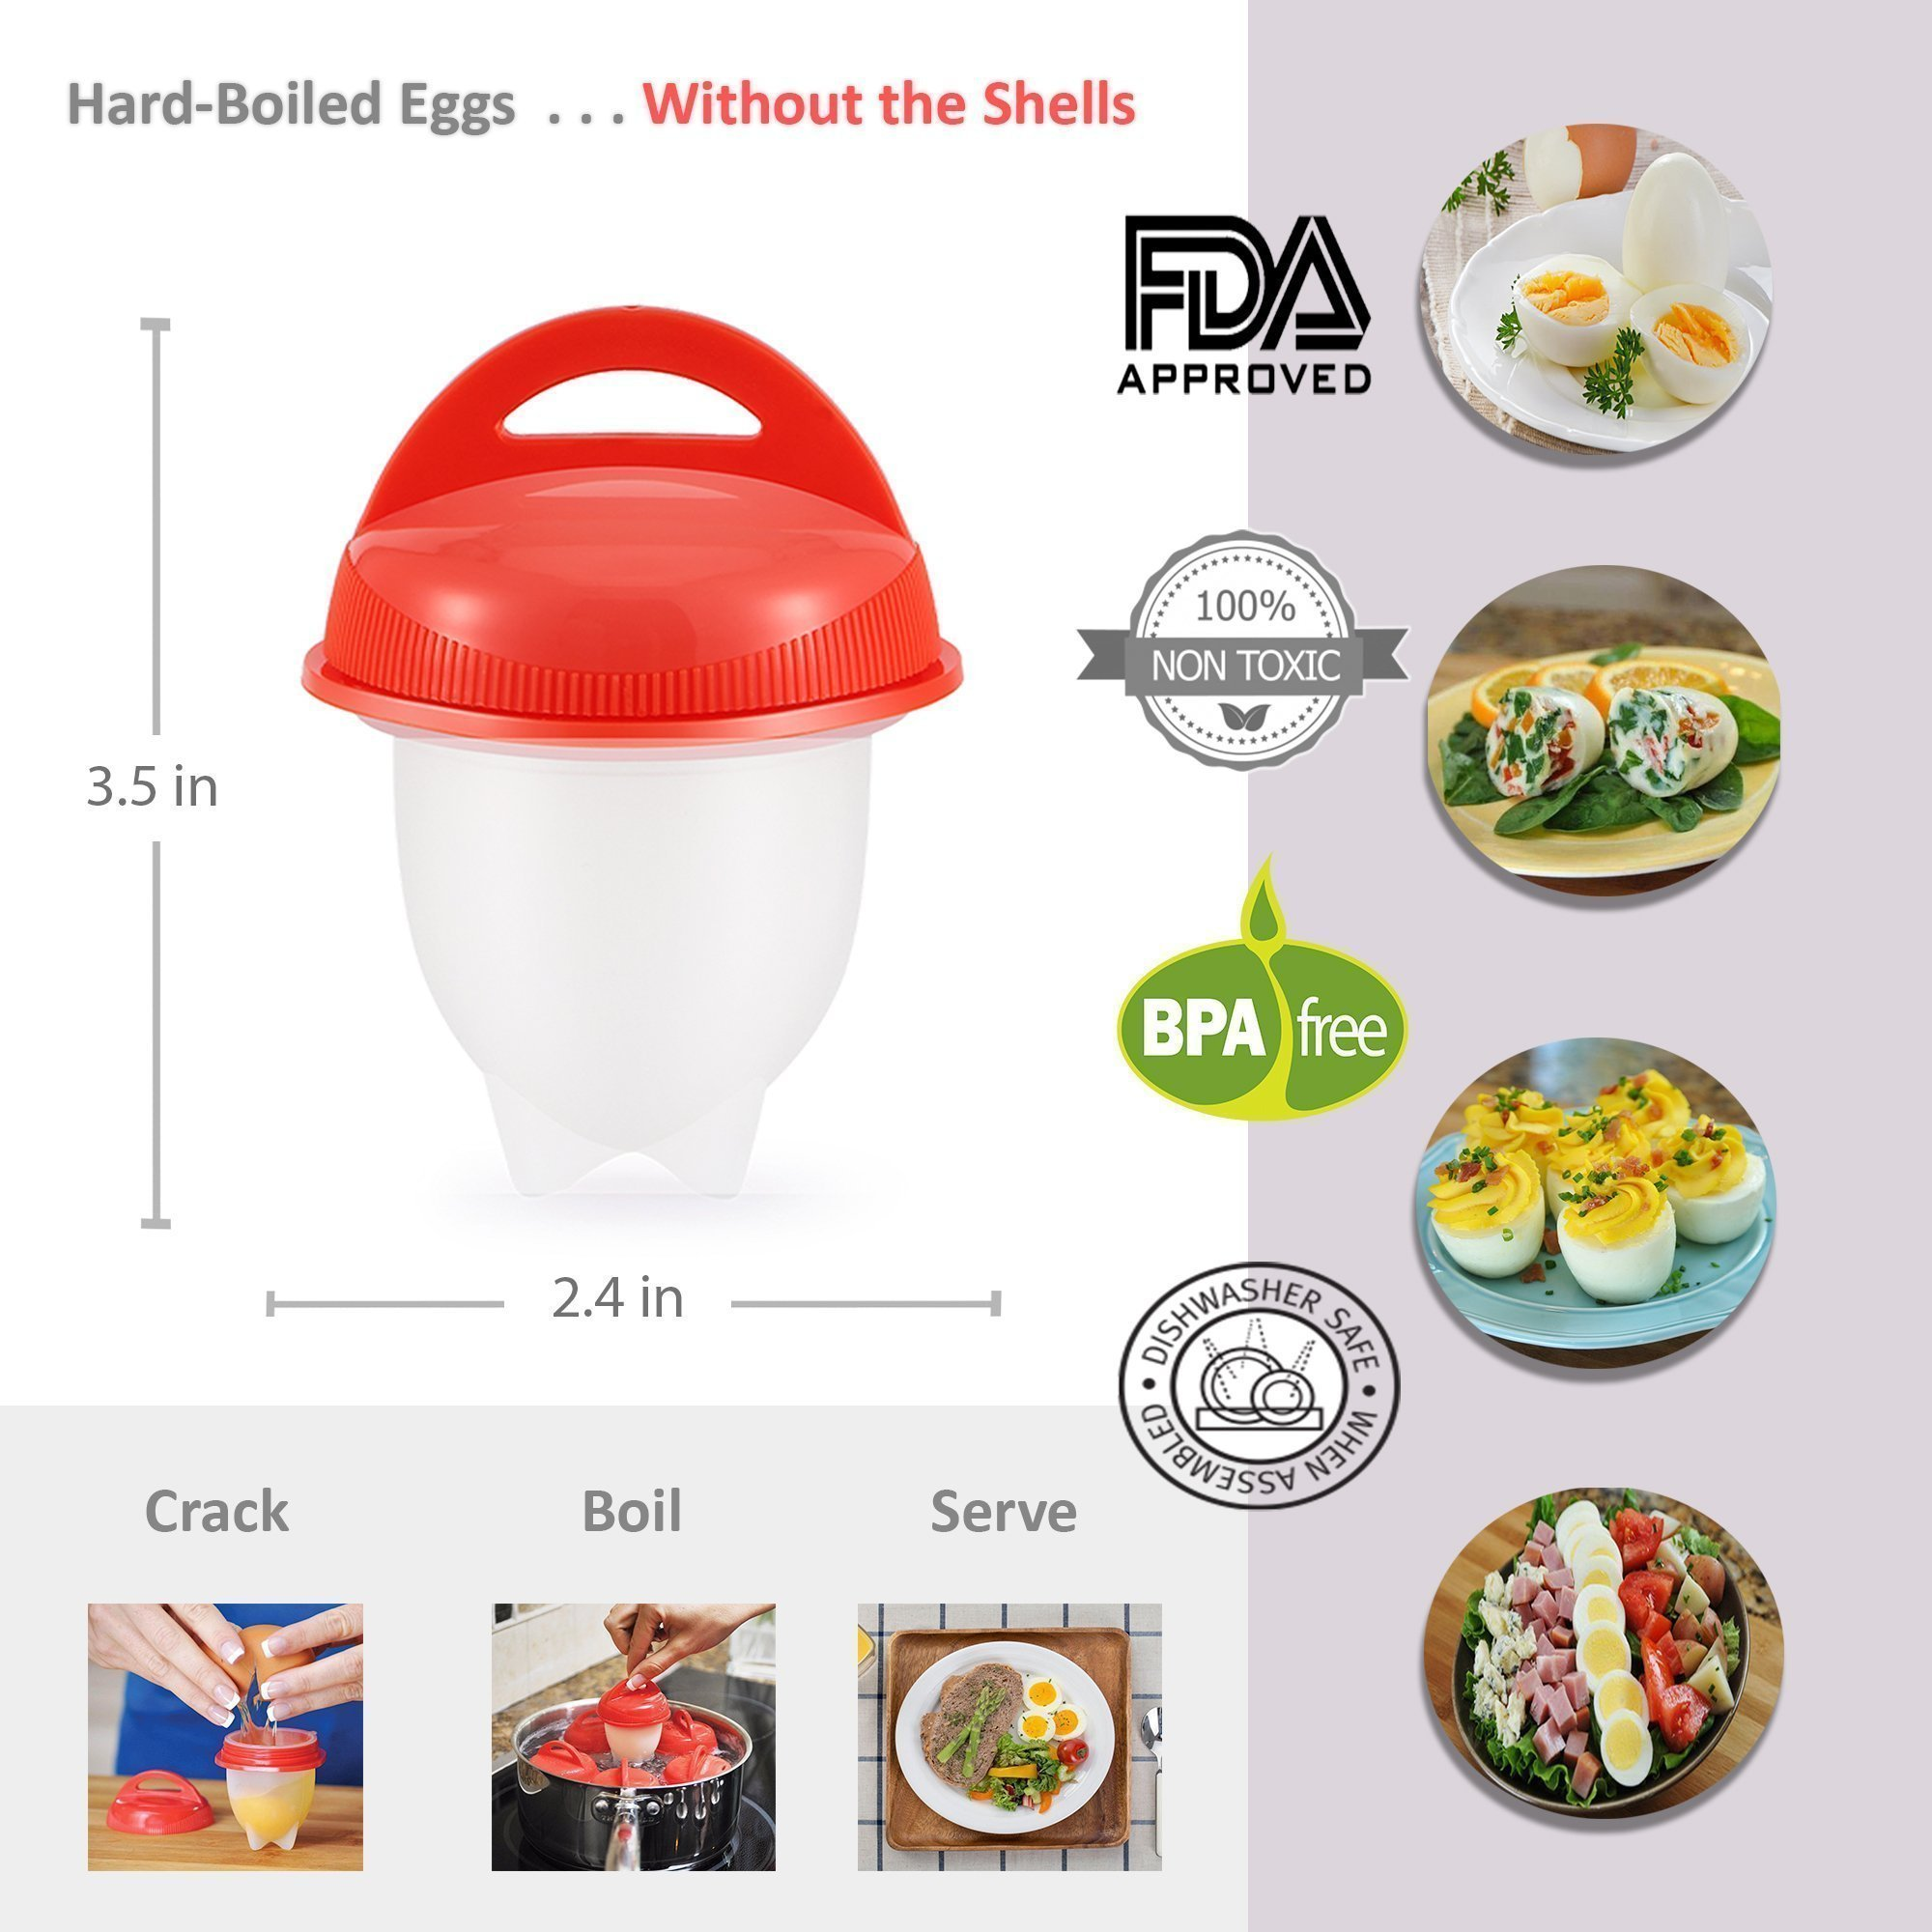 As Seen on TV Egg Cooker Set - 6 Pack, Non Stick Silicon Egg Boiler, Hard Boiled Eggs With No Shell | Includes 4 FREE Complimentary Items: 1 Egg Timer, 1 Egg Separator, 1 Egg Whisk and 1 Egg Slicer by KooZs (Image #2)